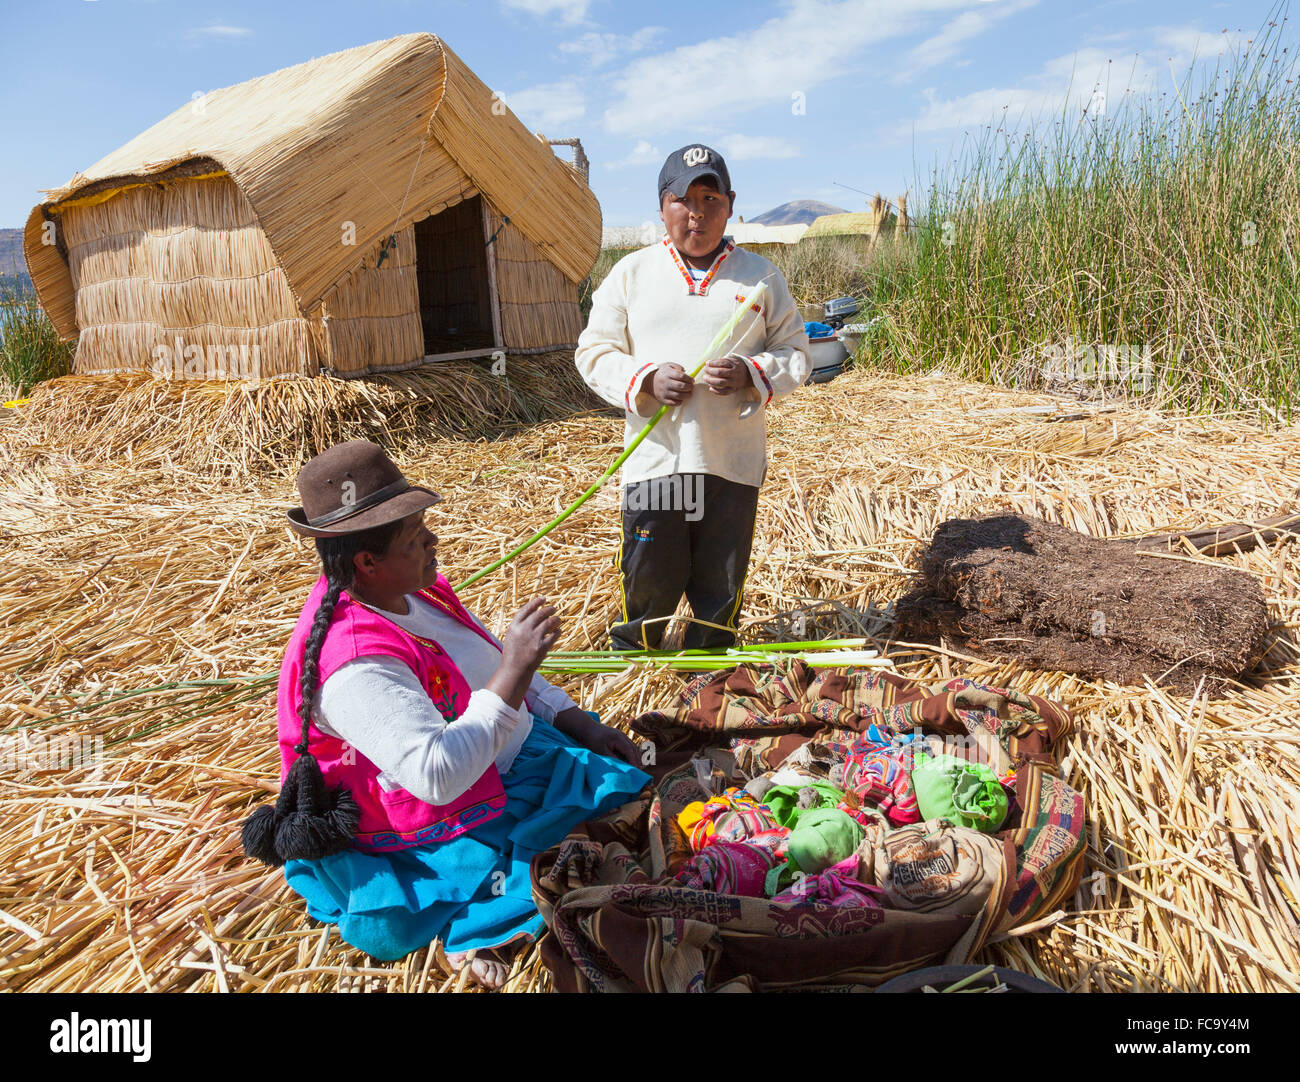 Mother and son - Uros Islands - Stock Image